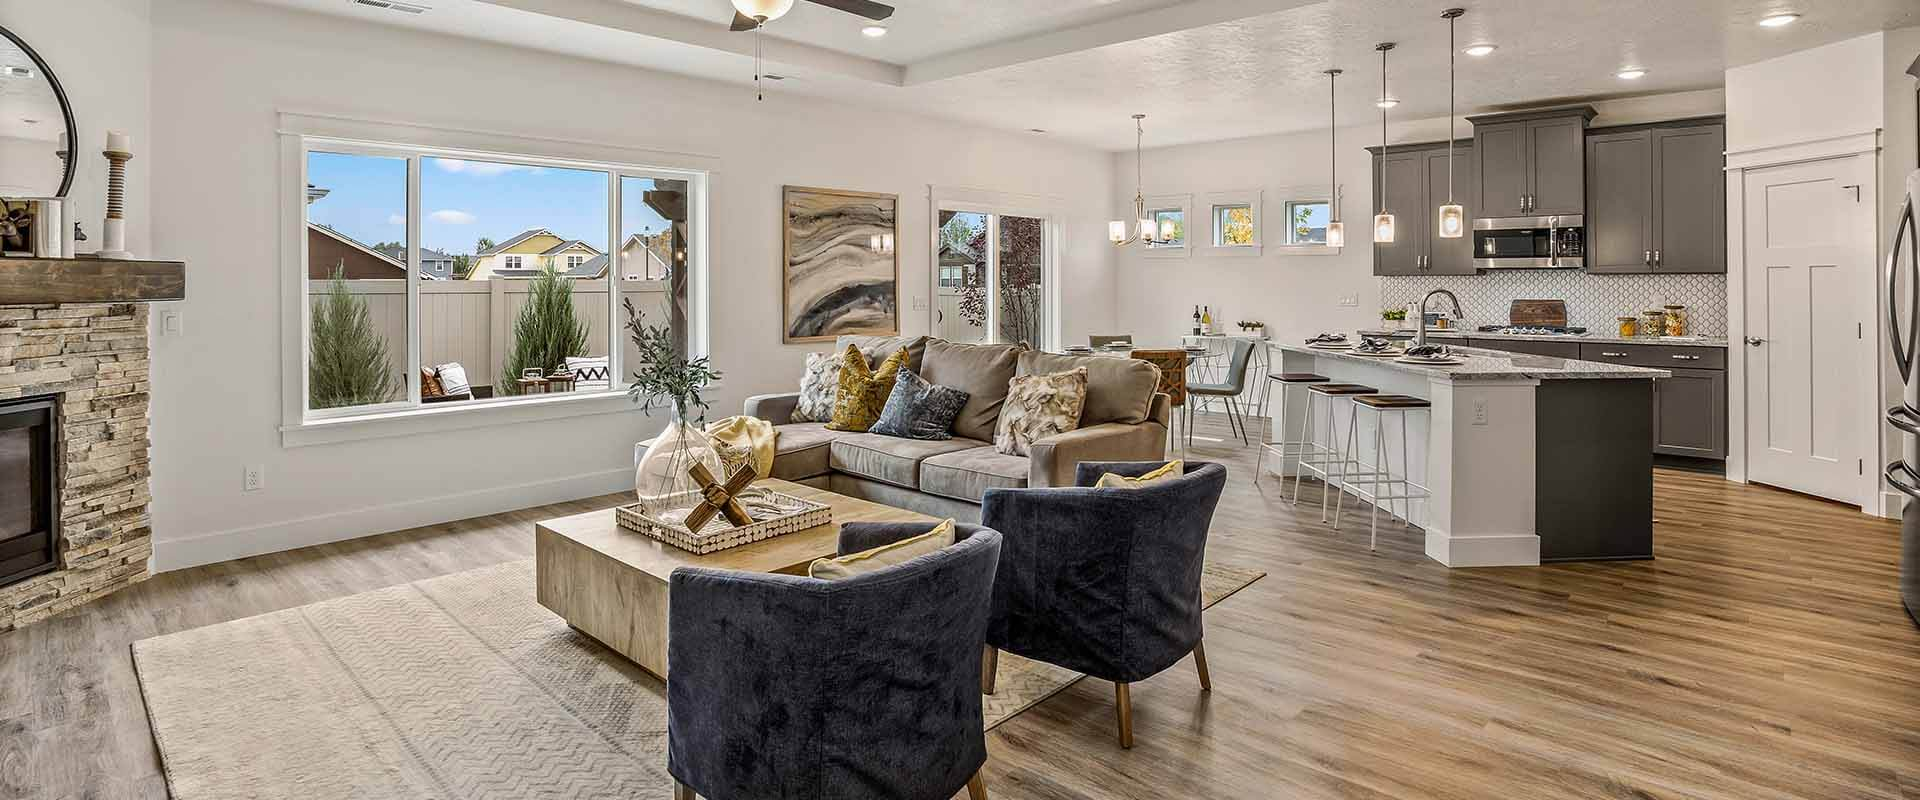 Hubble Homes Parade Home-New-Homes-Star-Idaho_0000_Parade Home - Silkwood - Great Room- 582 N Heliopolis Way-13.jpg